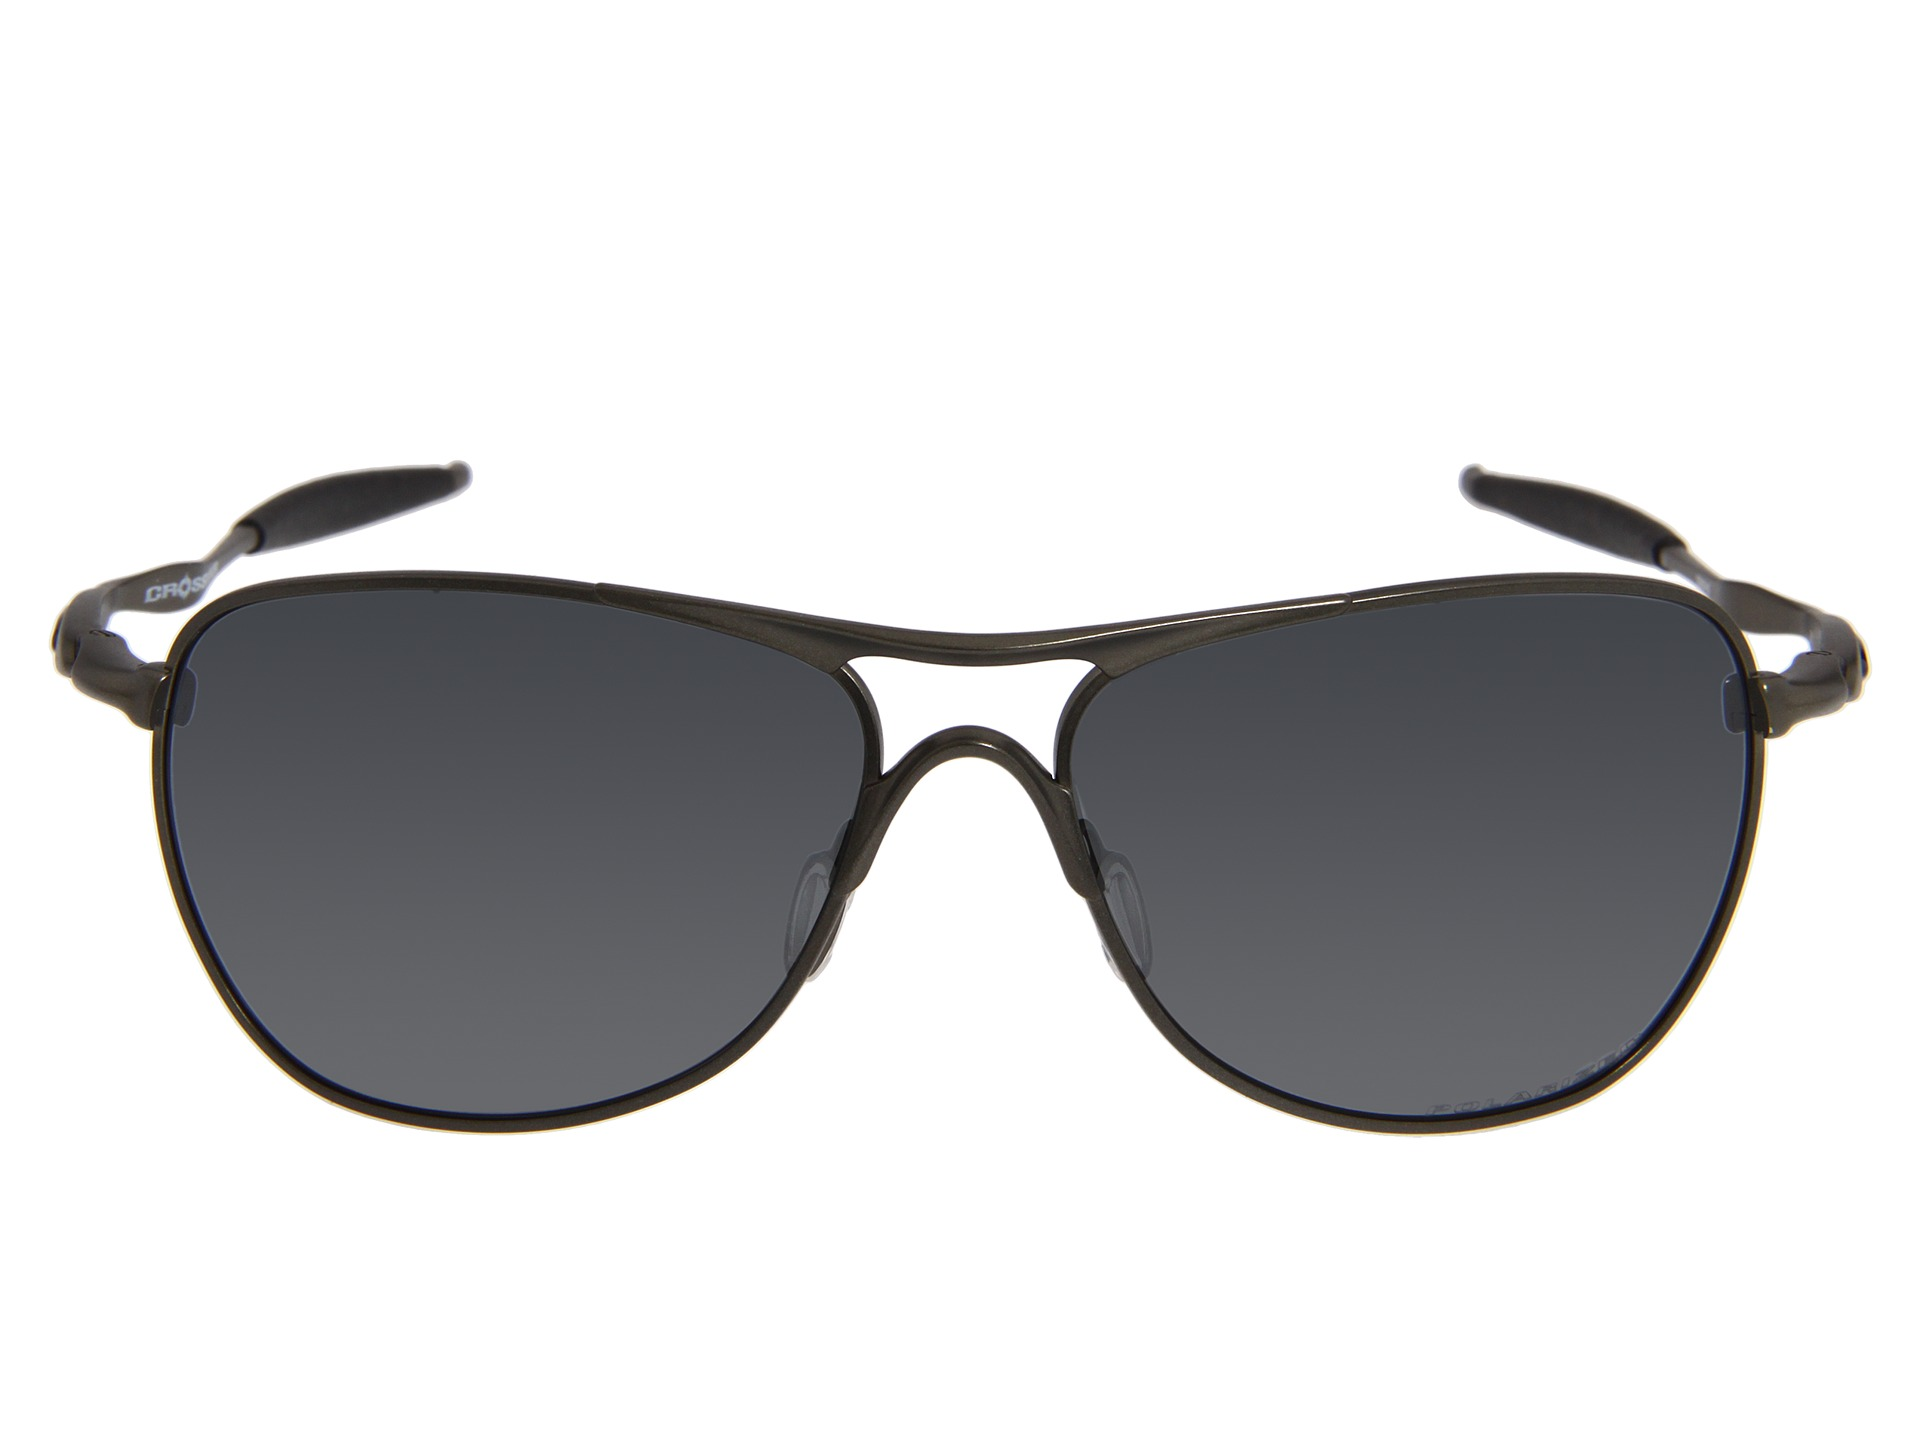 discount oakley sunglasses for men 79ae  Oakley Polarized Pit Boss Sunglasses available at the online Oakley Store   Sunlasses  Pinterest